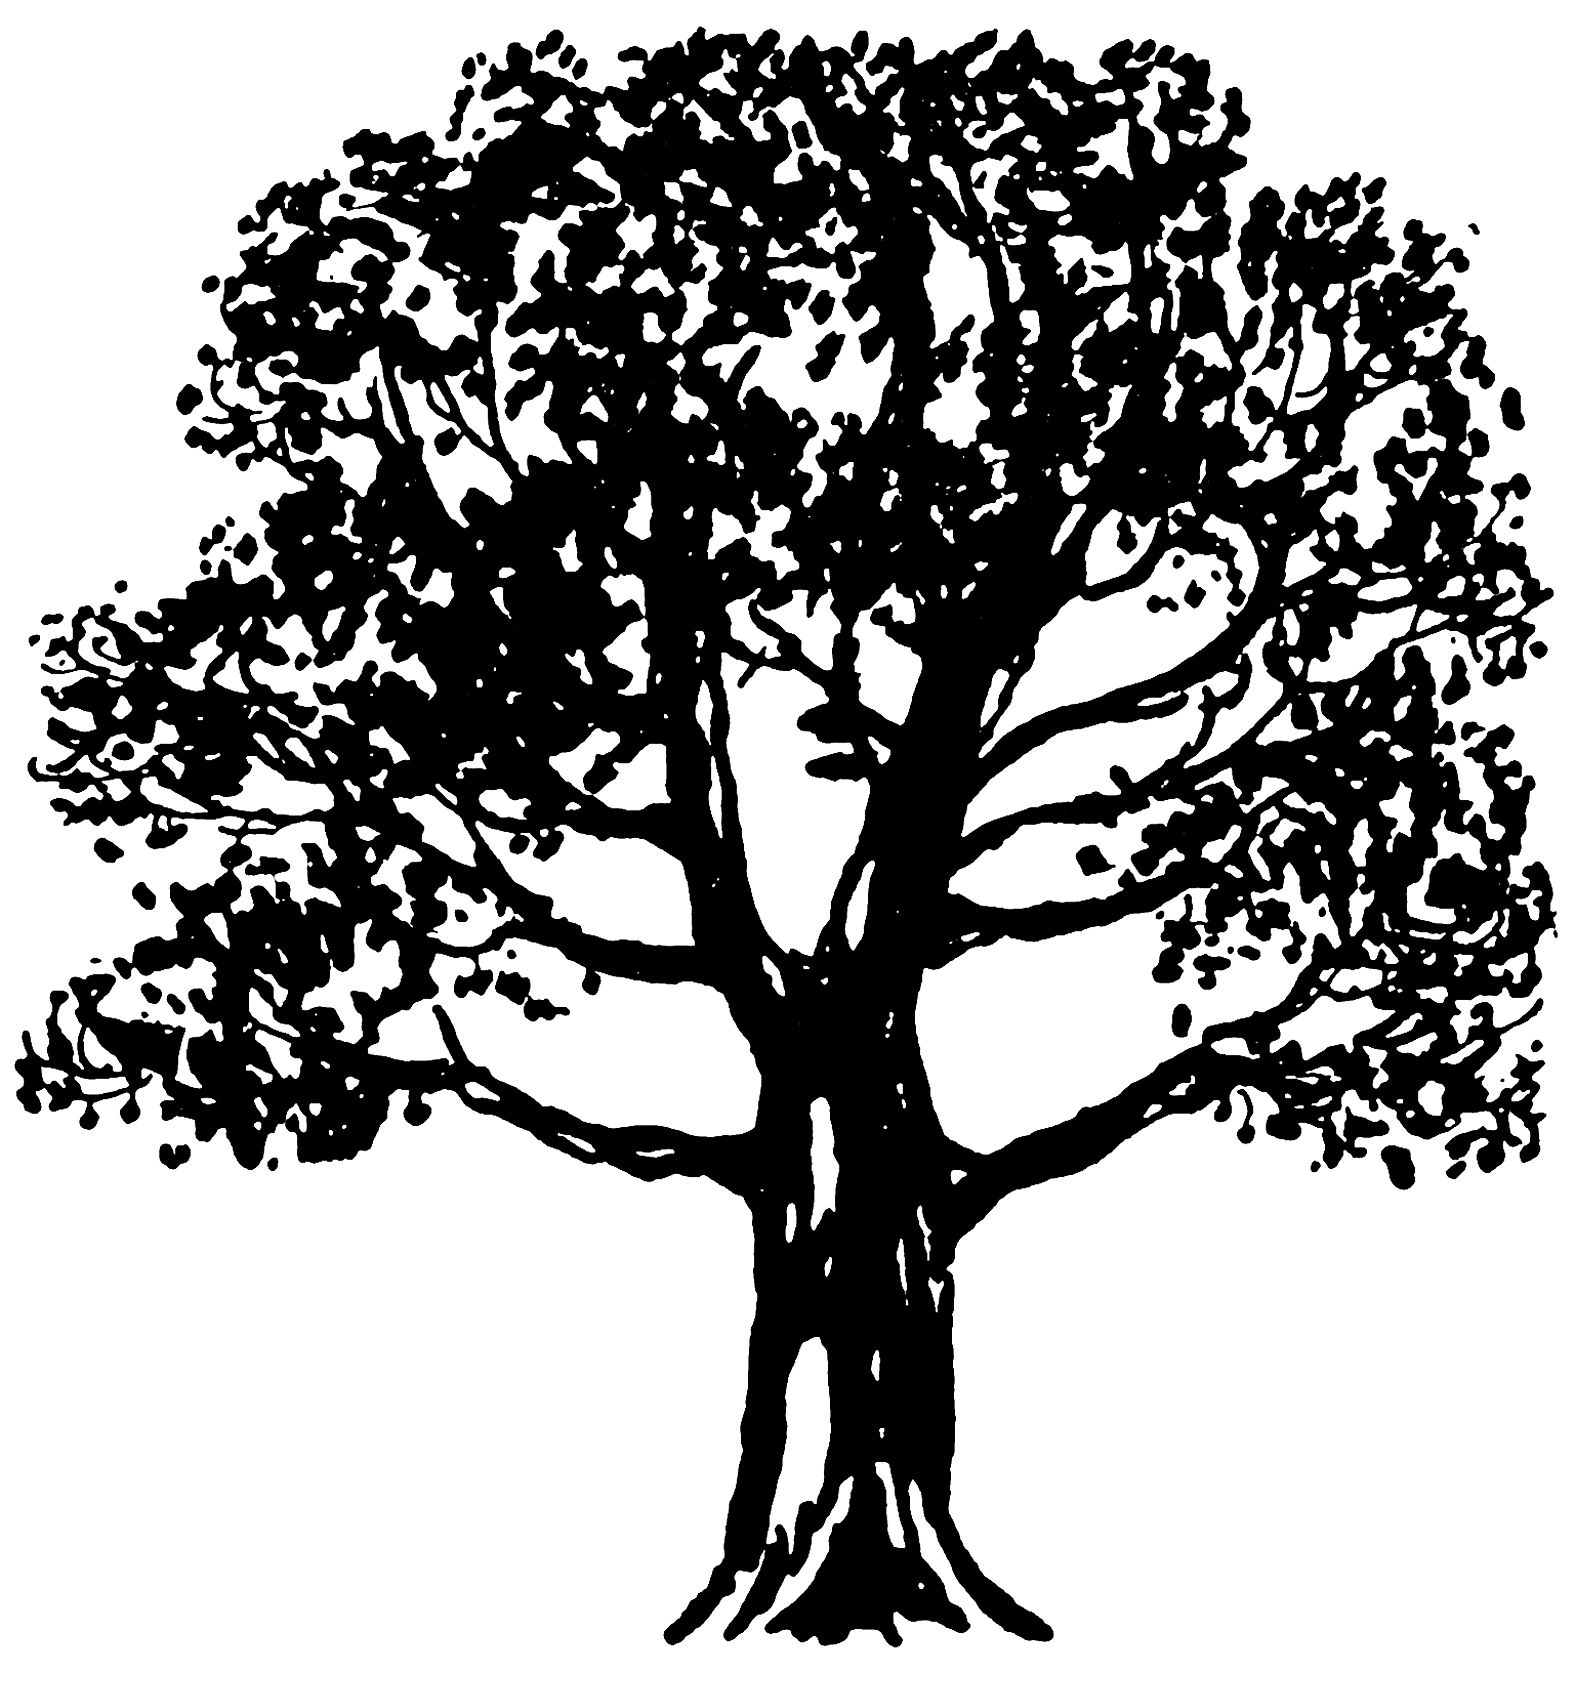 Wispy tree clipart jpg freeuse stock 32 Tree Clipart - Tree Images Free! - The Graphics Fairy jpg freeuse stock